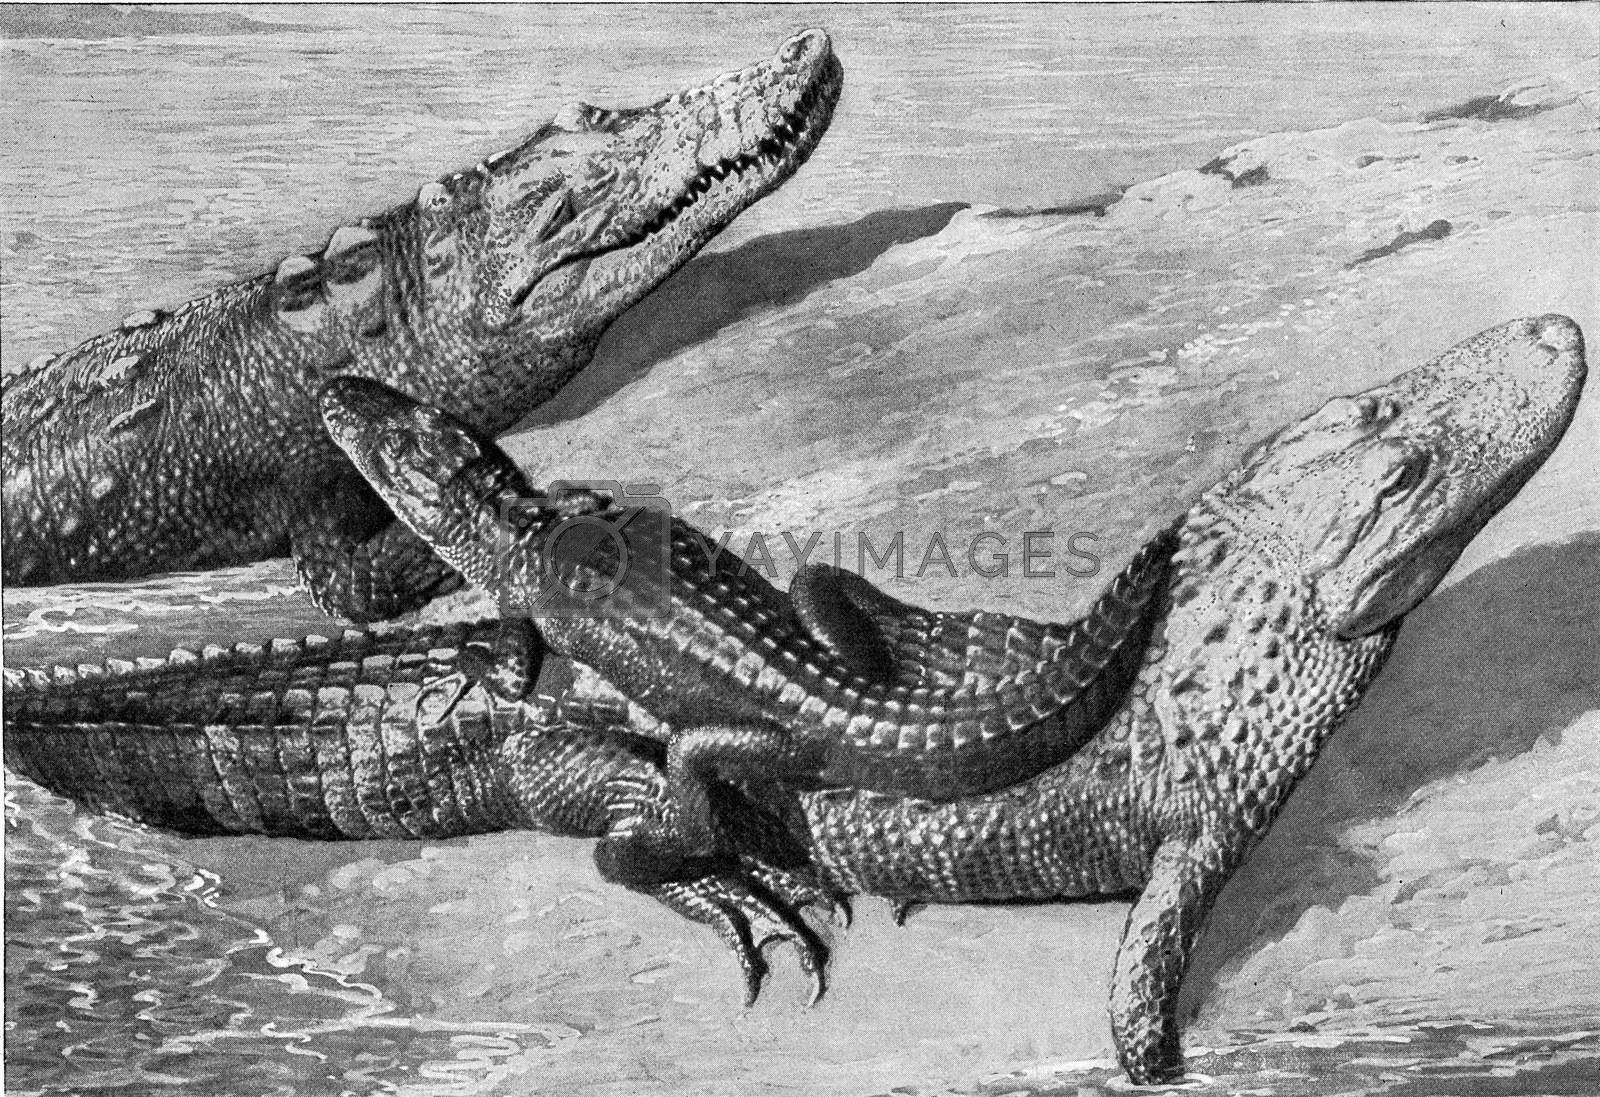 Group of alligators, vintage engraved illustration. From the Universe and Humanity, 1910.